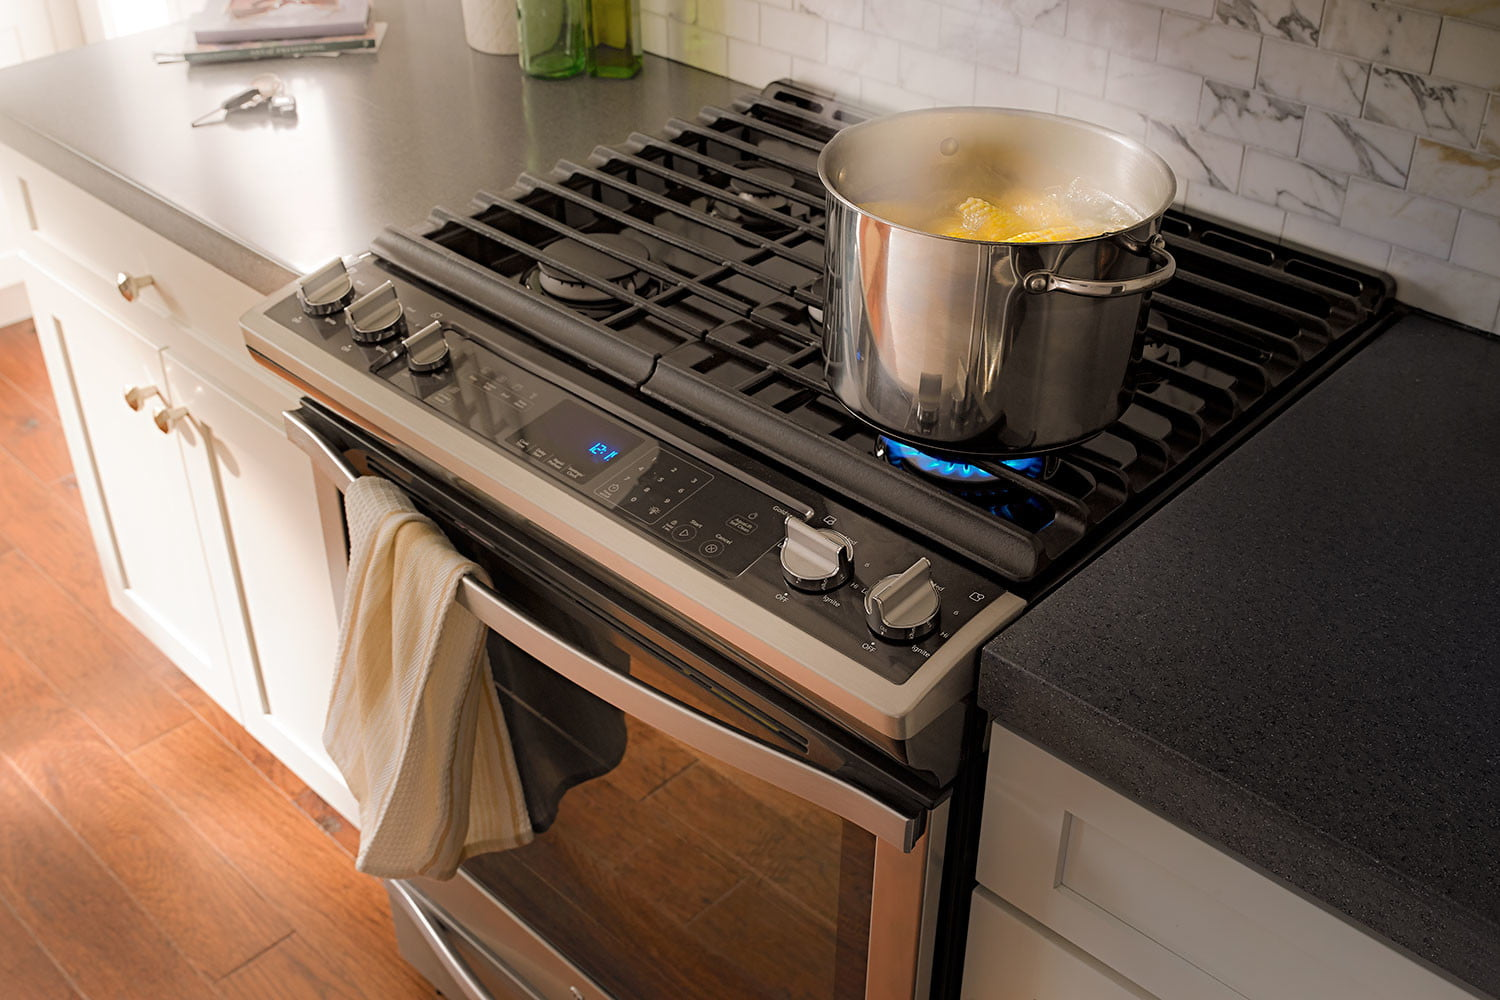 Whirlpool Countertop Stove Whirlpool Introduces 20 Voice Activated Appliances At Ces 2017